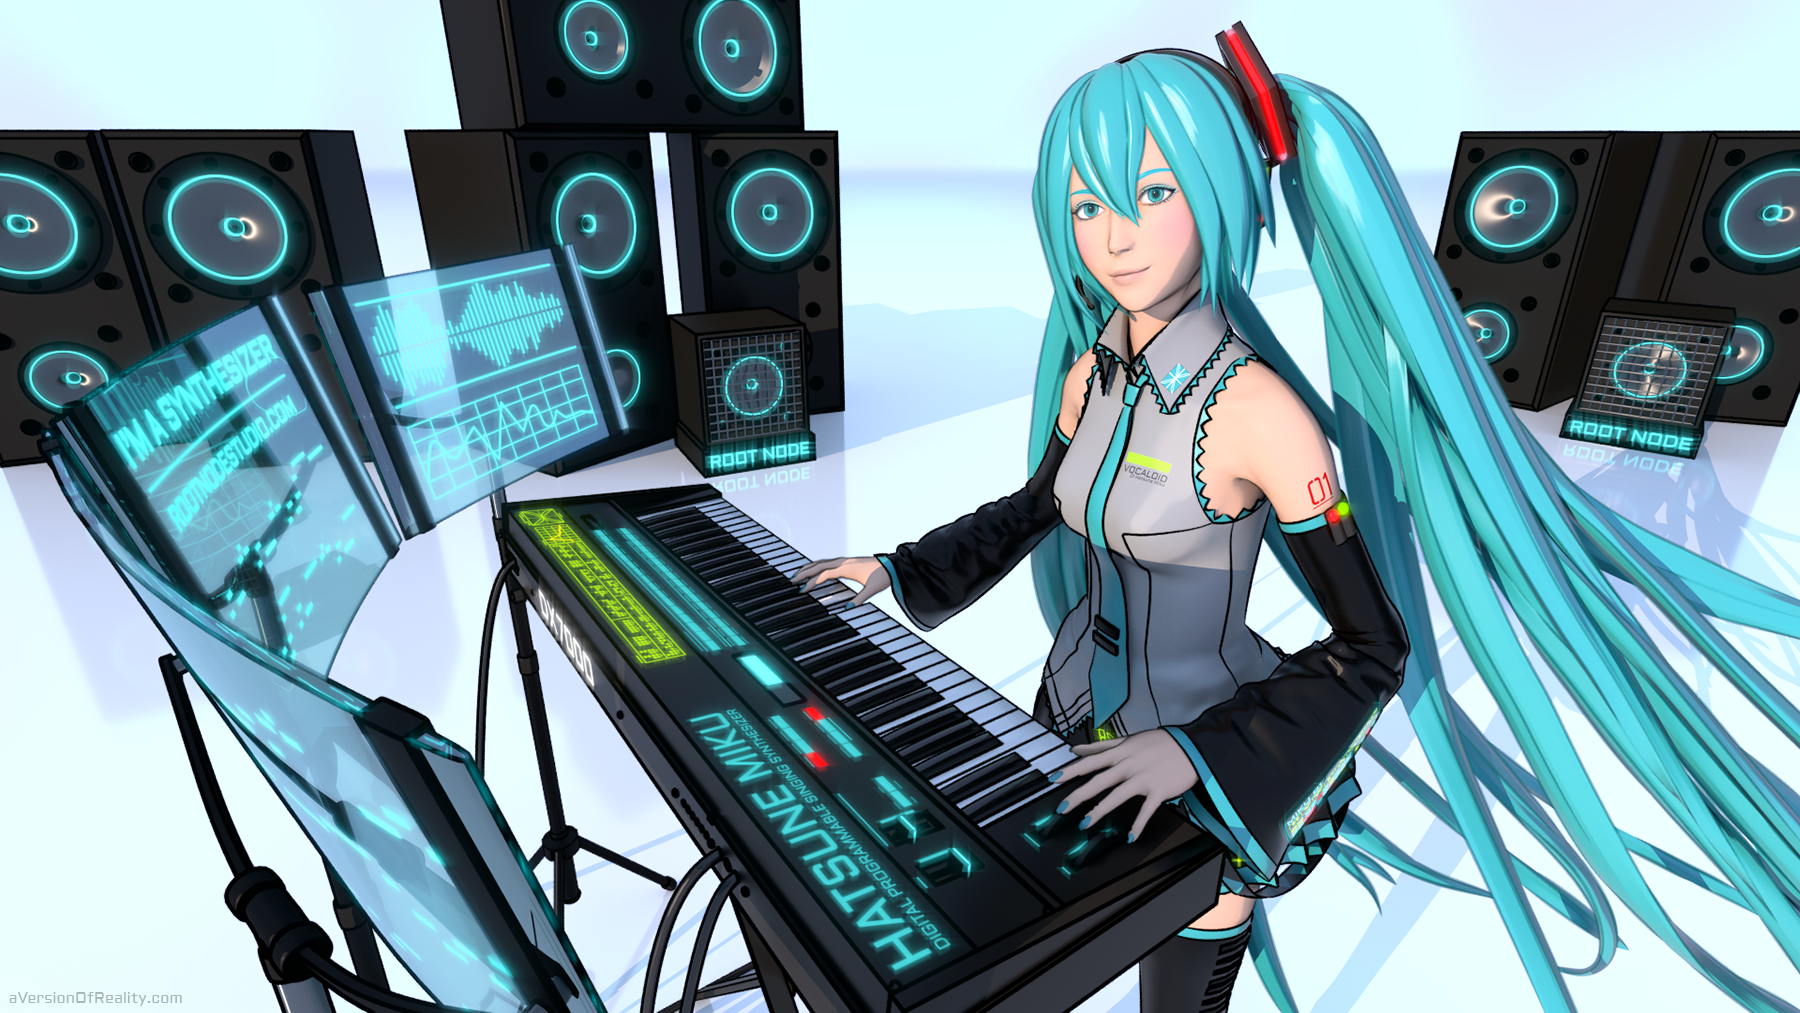 Click for full size.    View on  DeviantArt  or  Pixiv . Hatsune Miku character is © Crypton Future Media, Inc. 2007